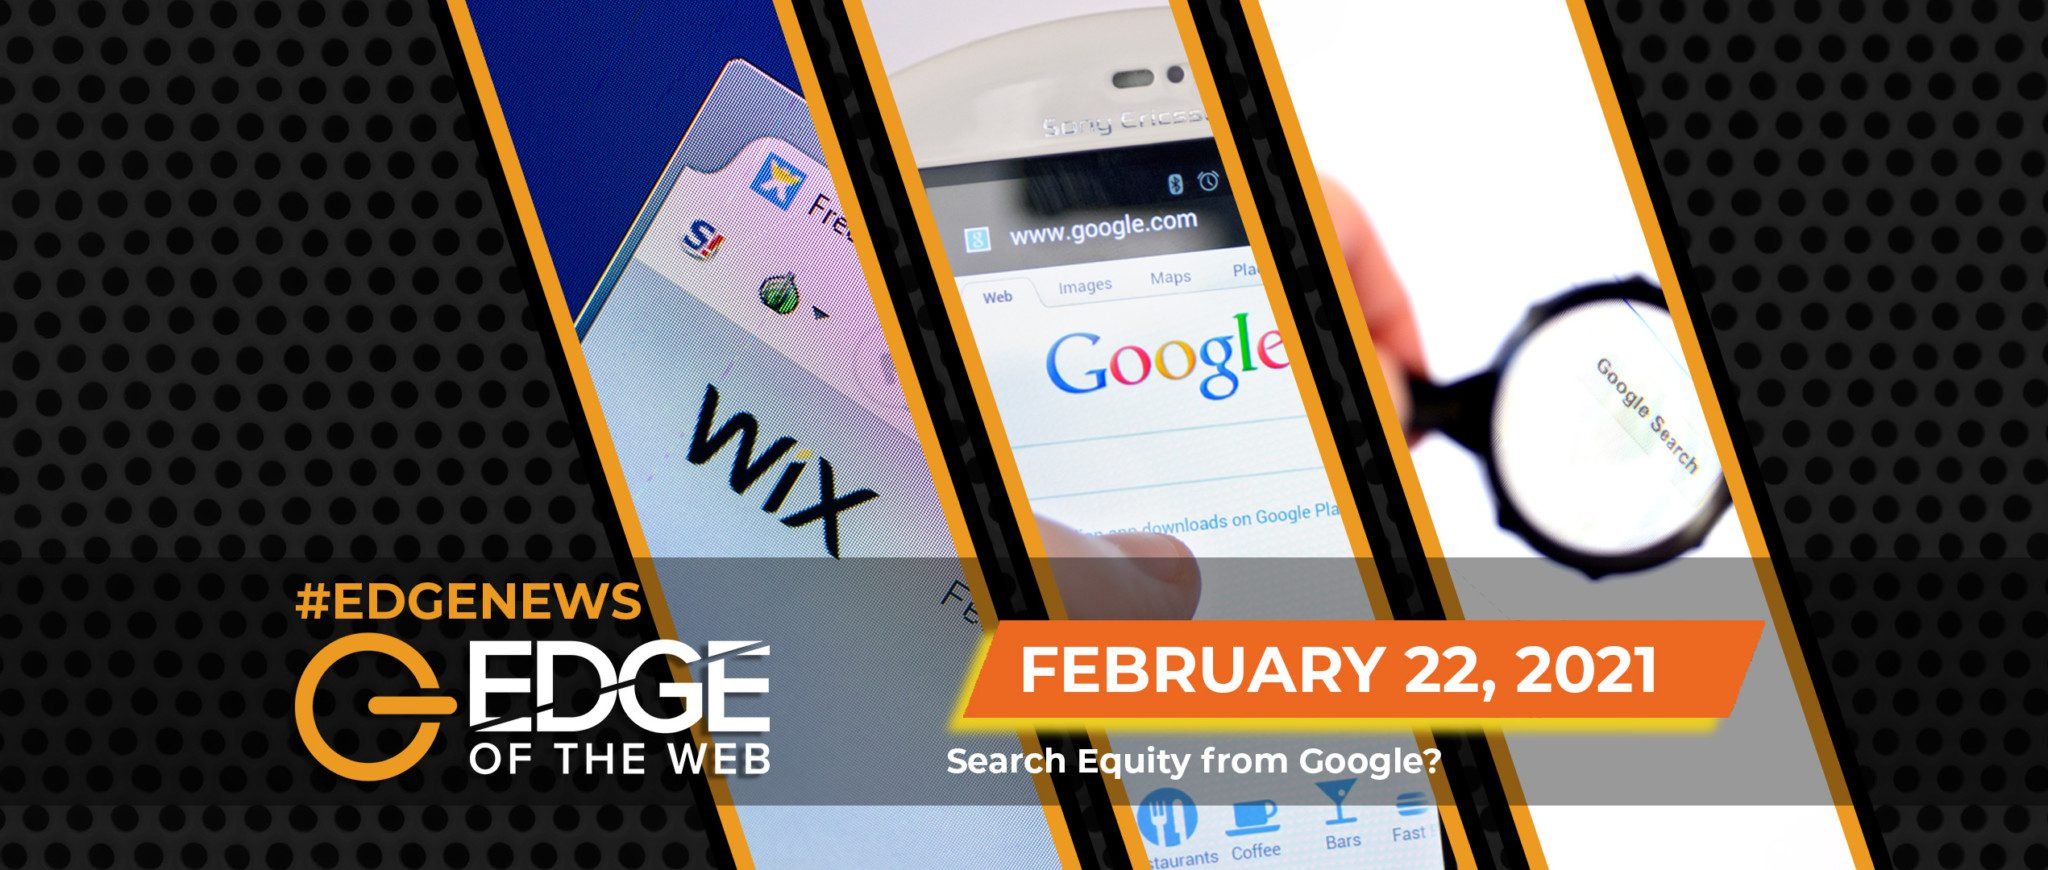 396 | News from the EDGE: Week of February 22, 2021